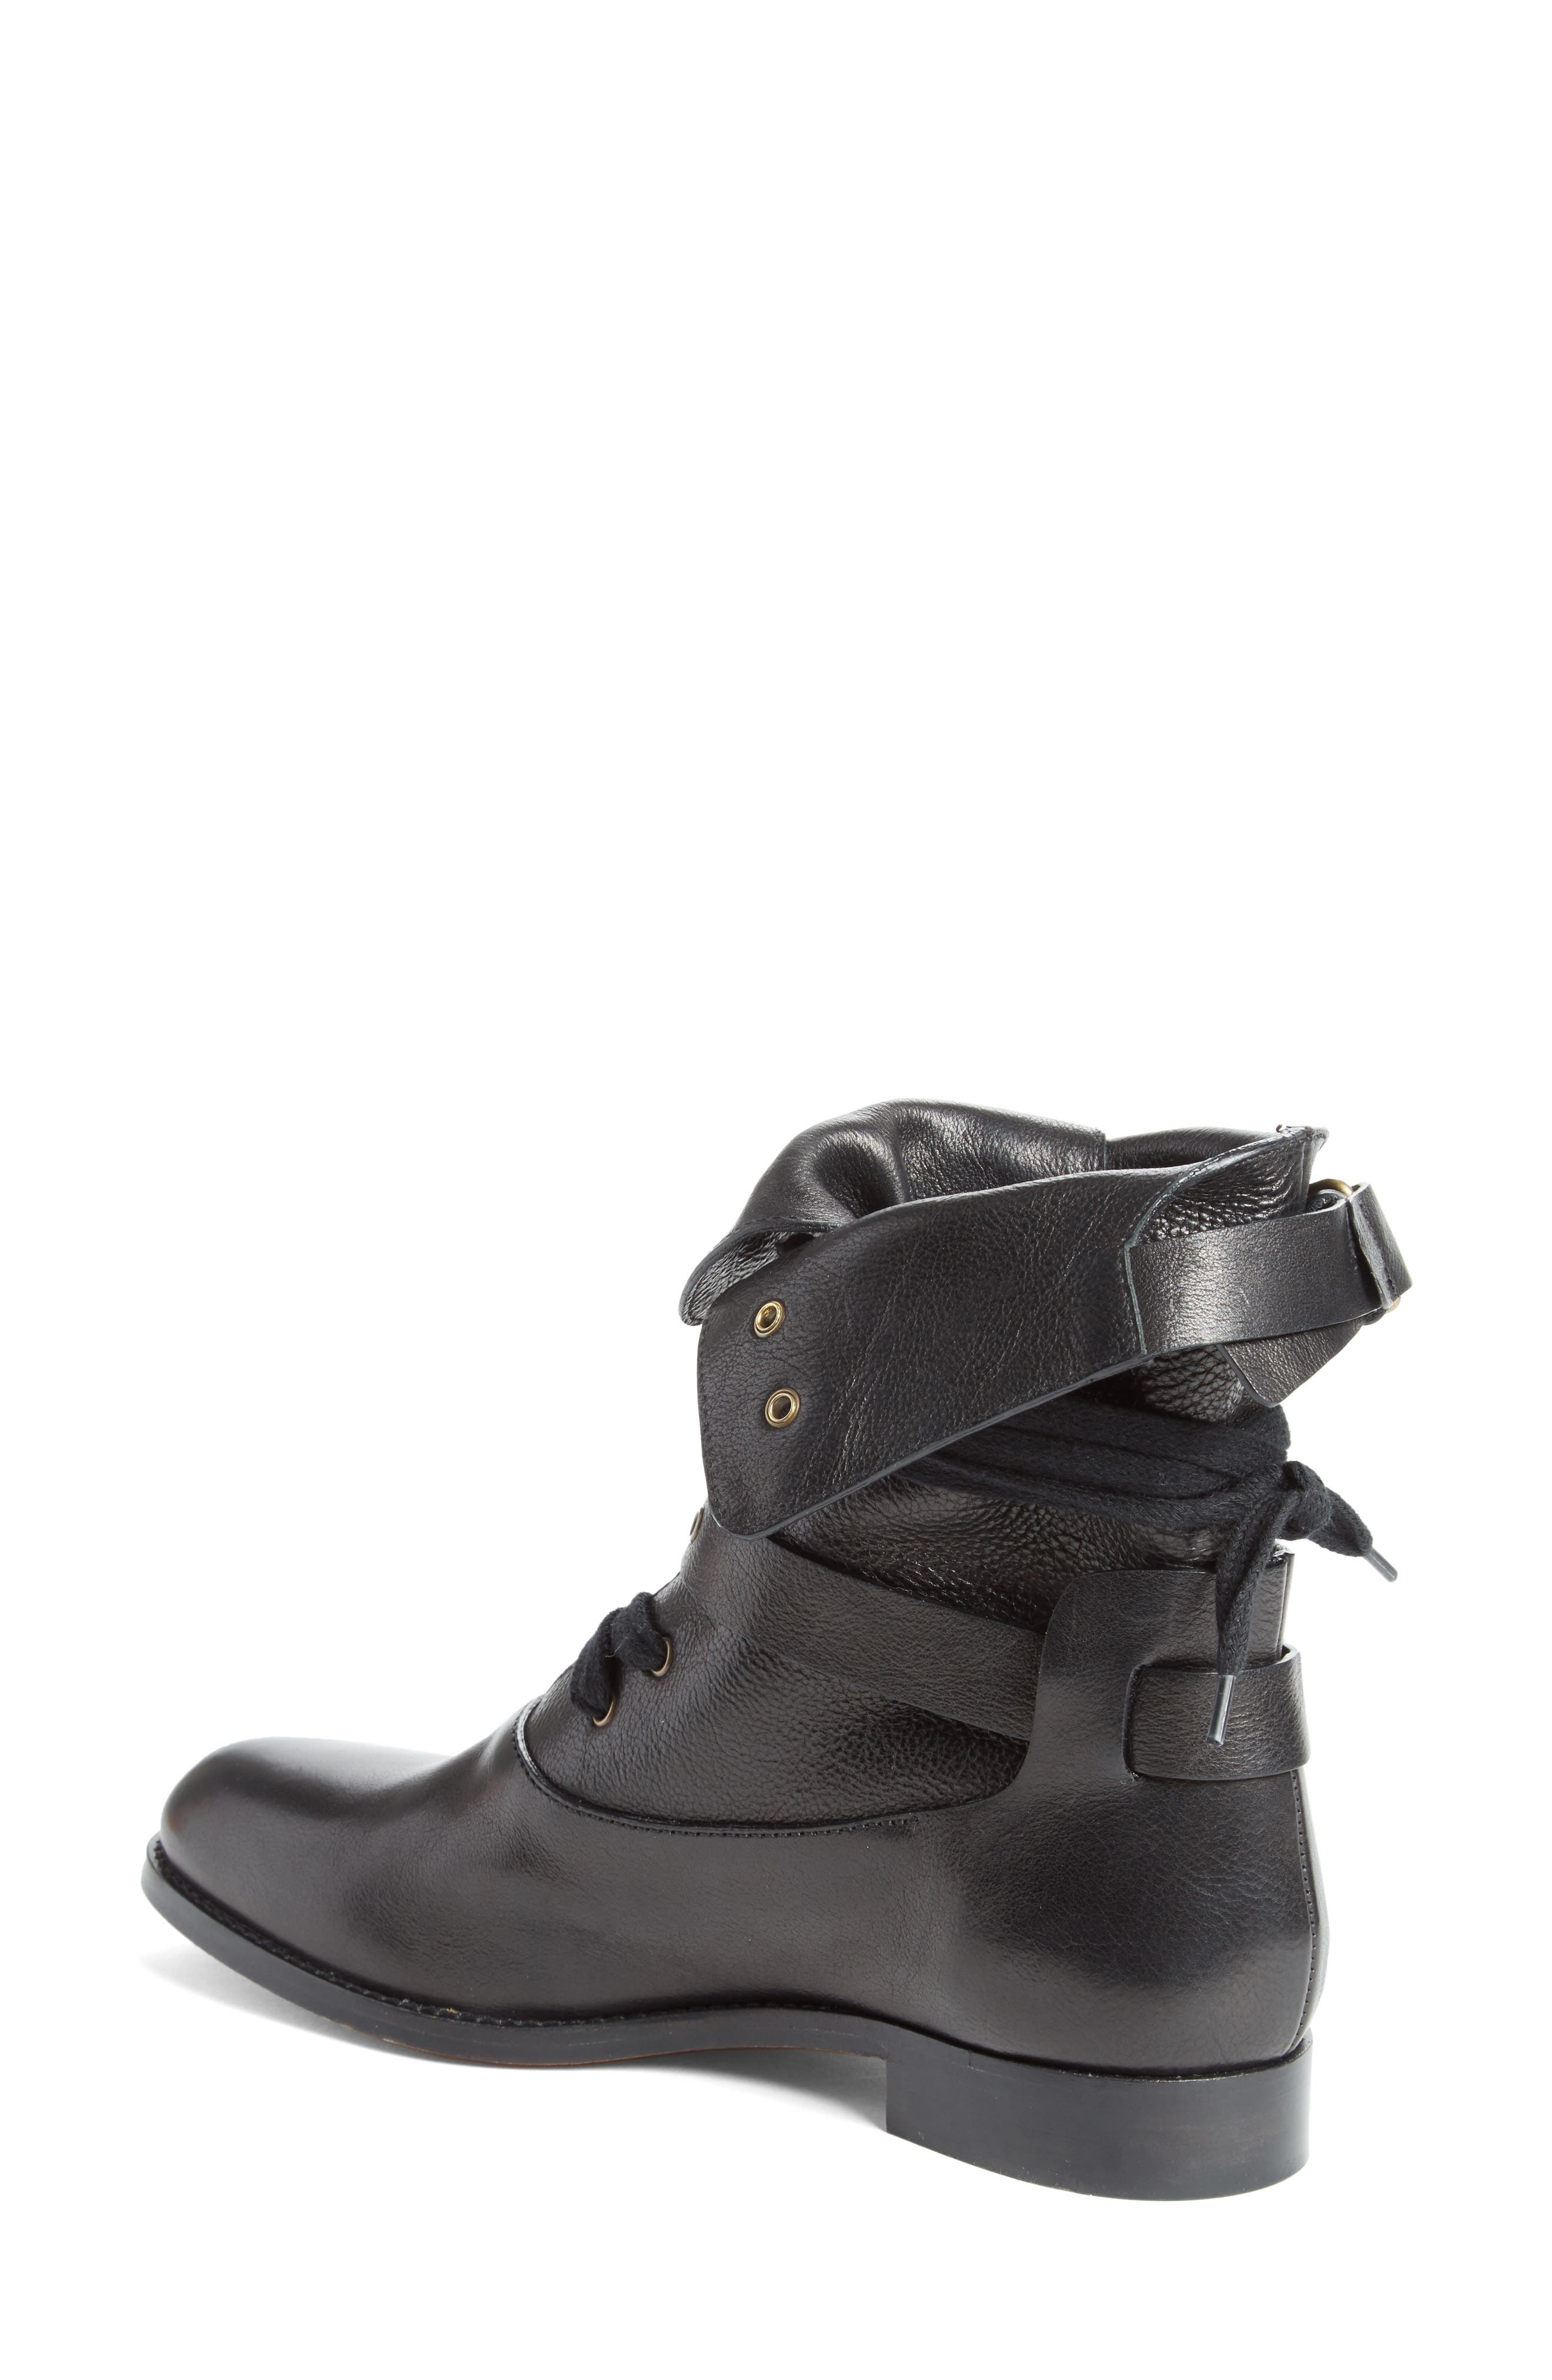 Otto Convertible Boot,                             Alternate thumbnail 3, color,                             001